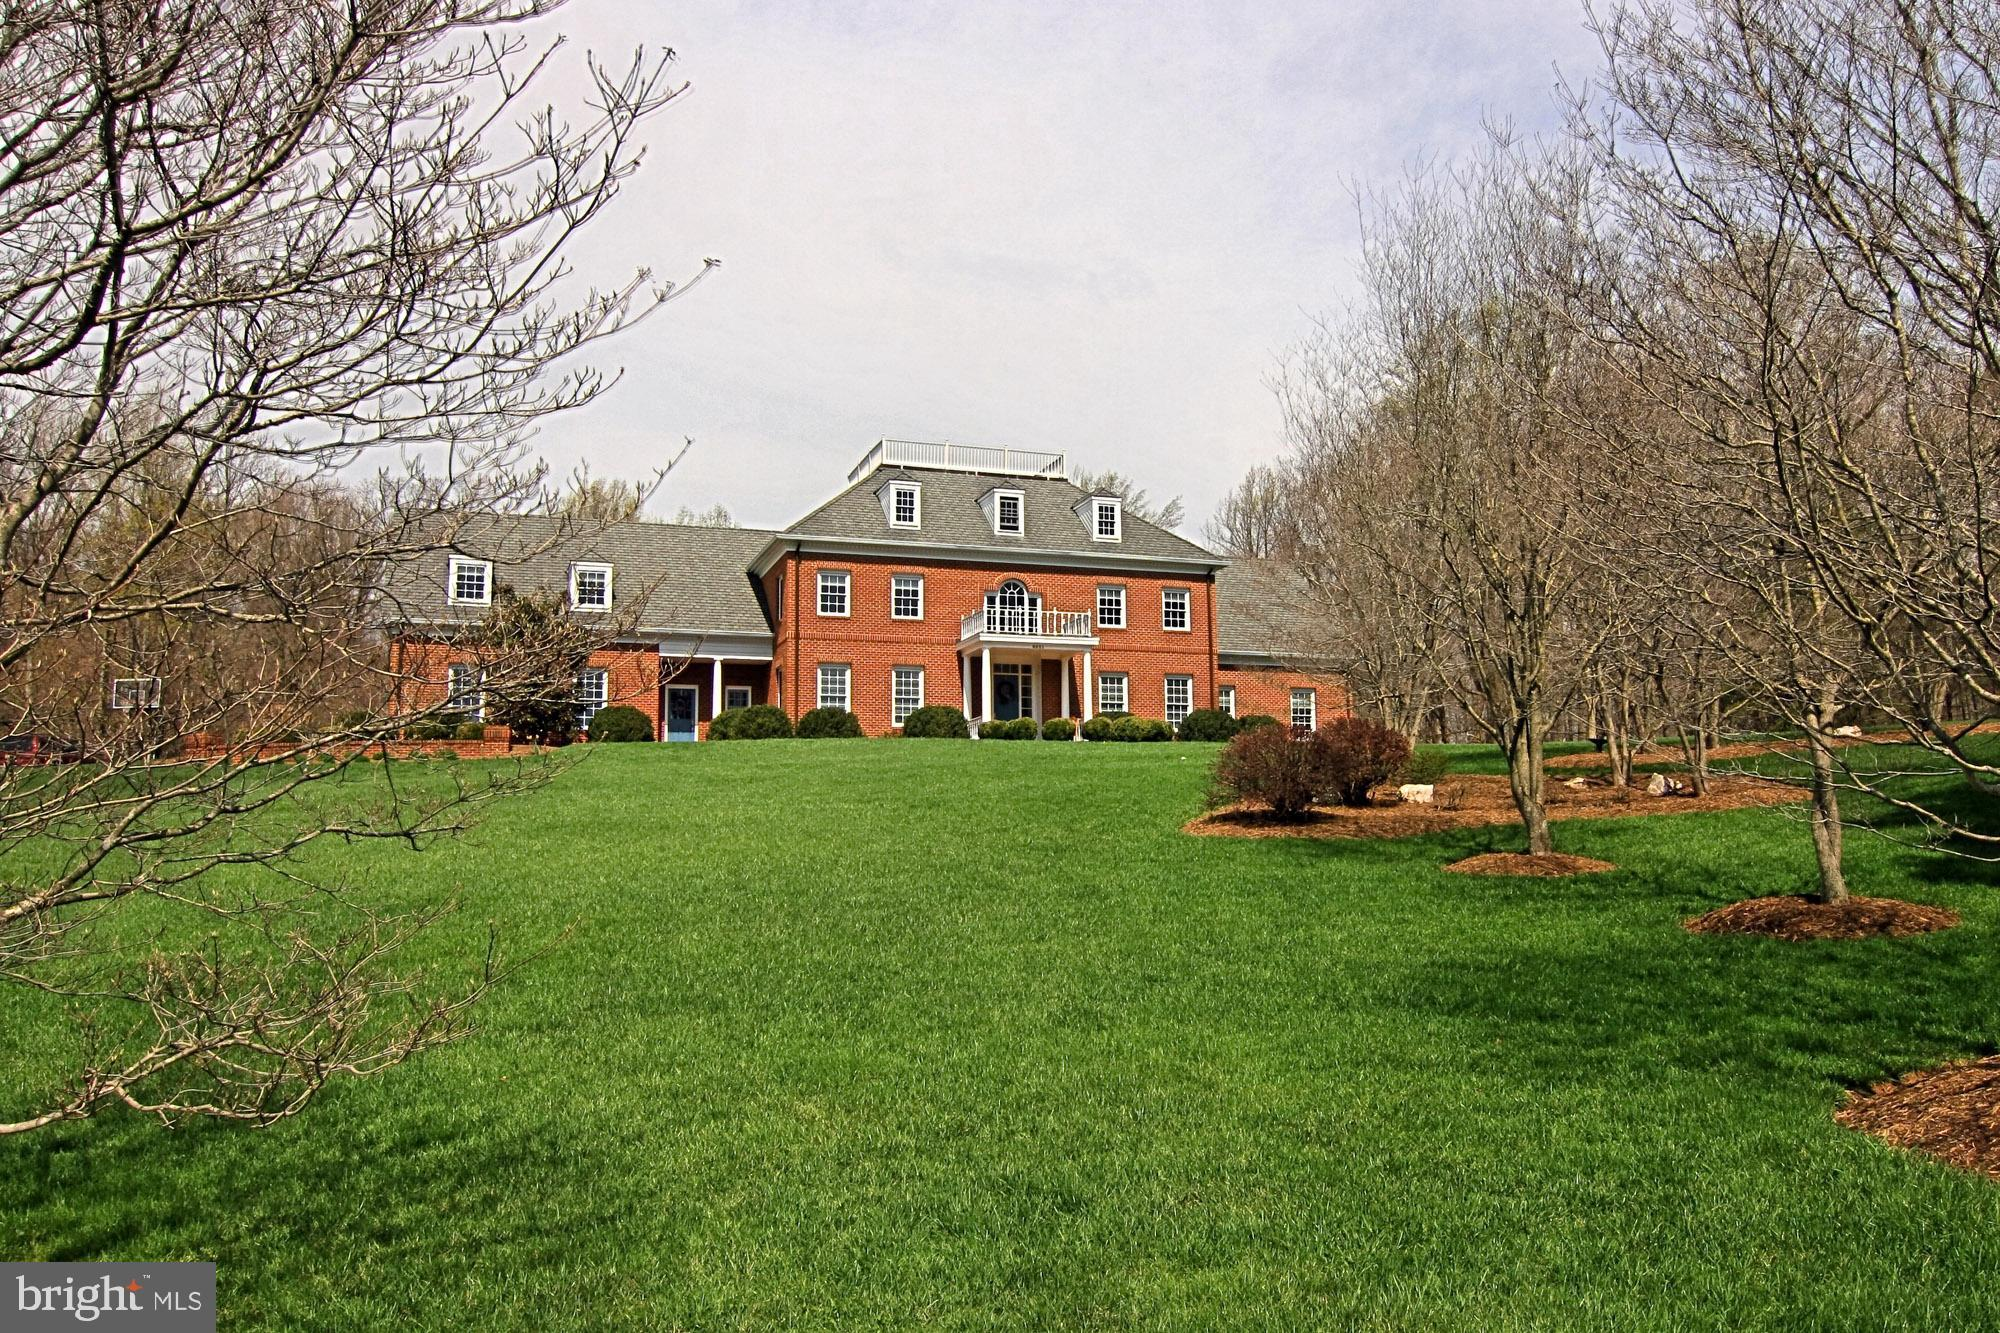 6501 MEGILLS COURT, CLIFTON, VA 20124